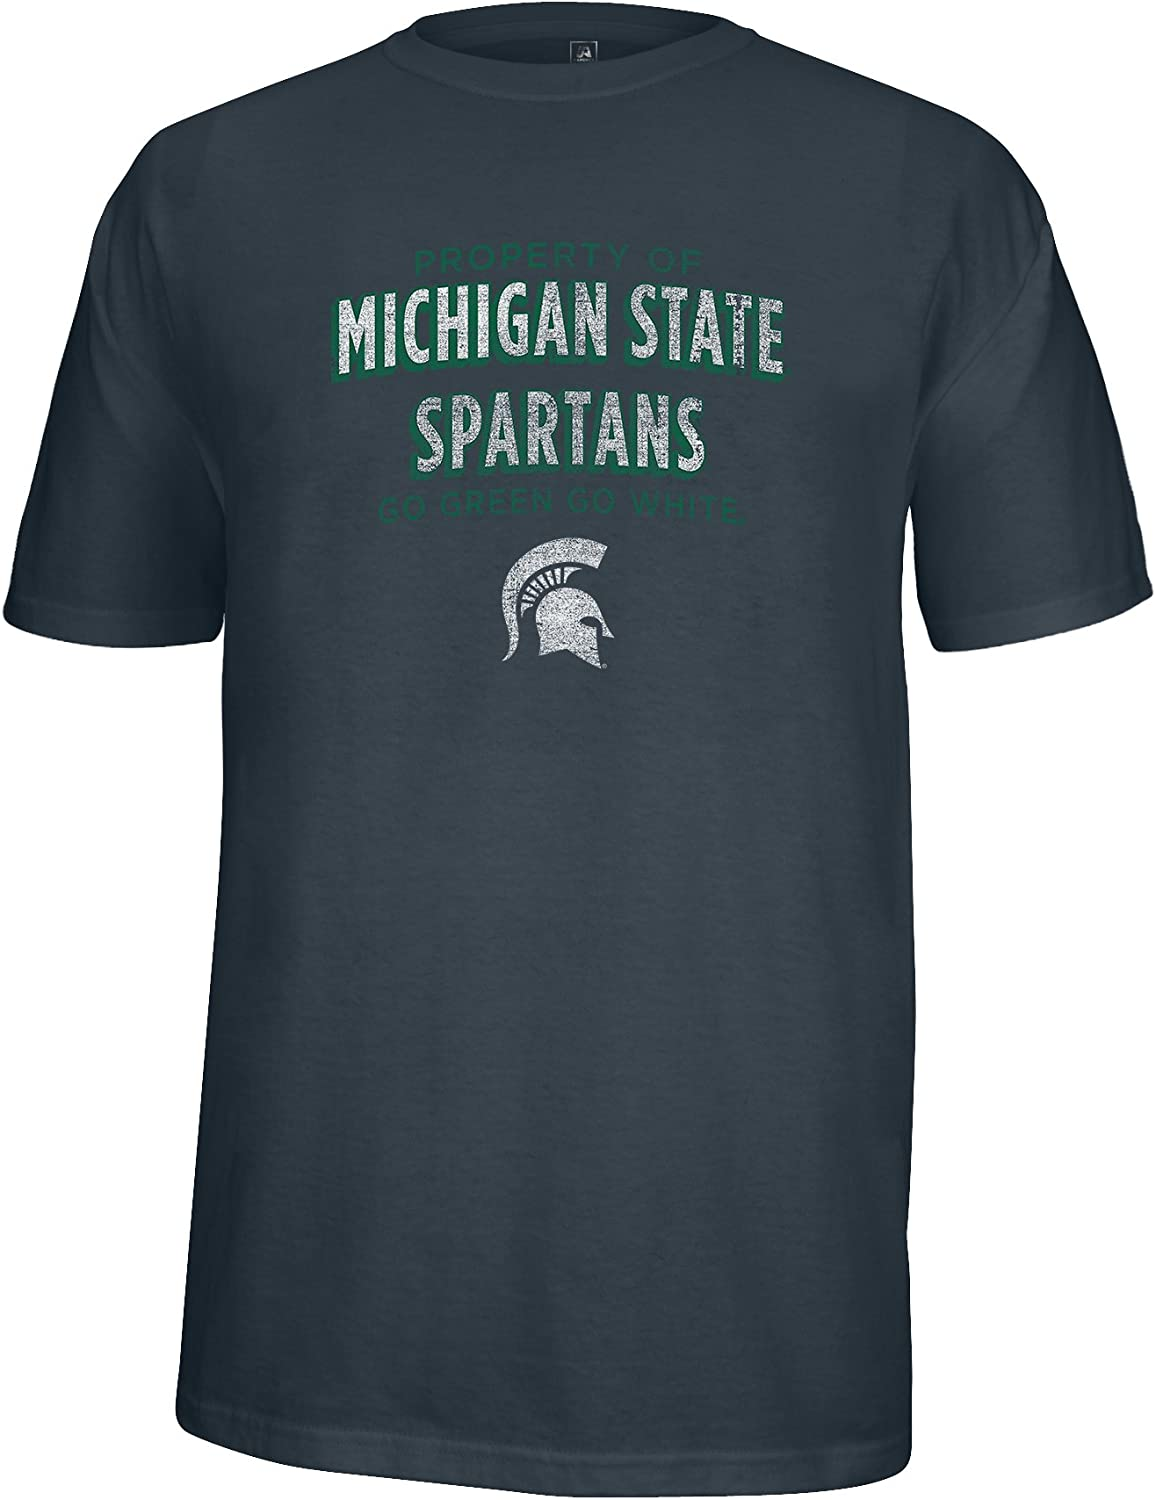 J XX-Large Charcoal Heather America NCAA Michigan State Spartans Mens Property of Heathered Flex Tee